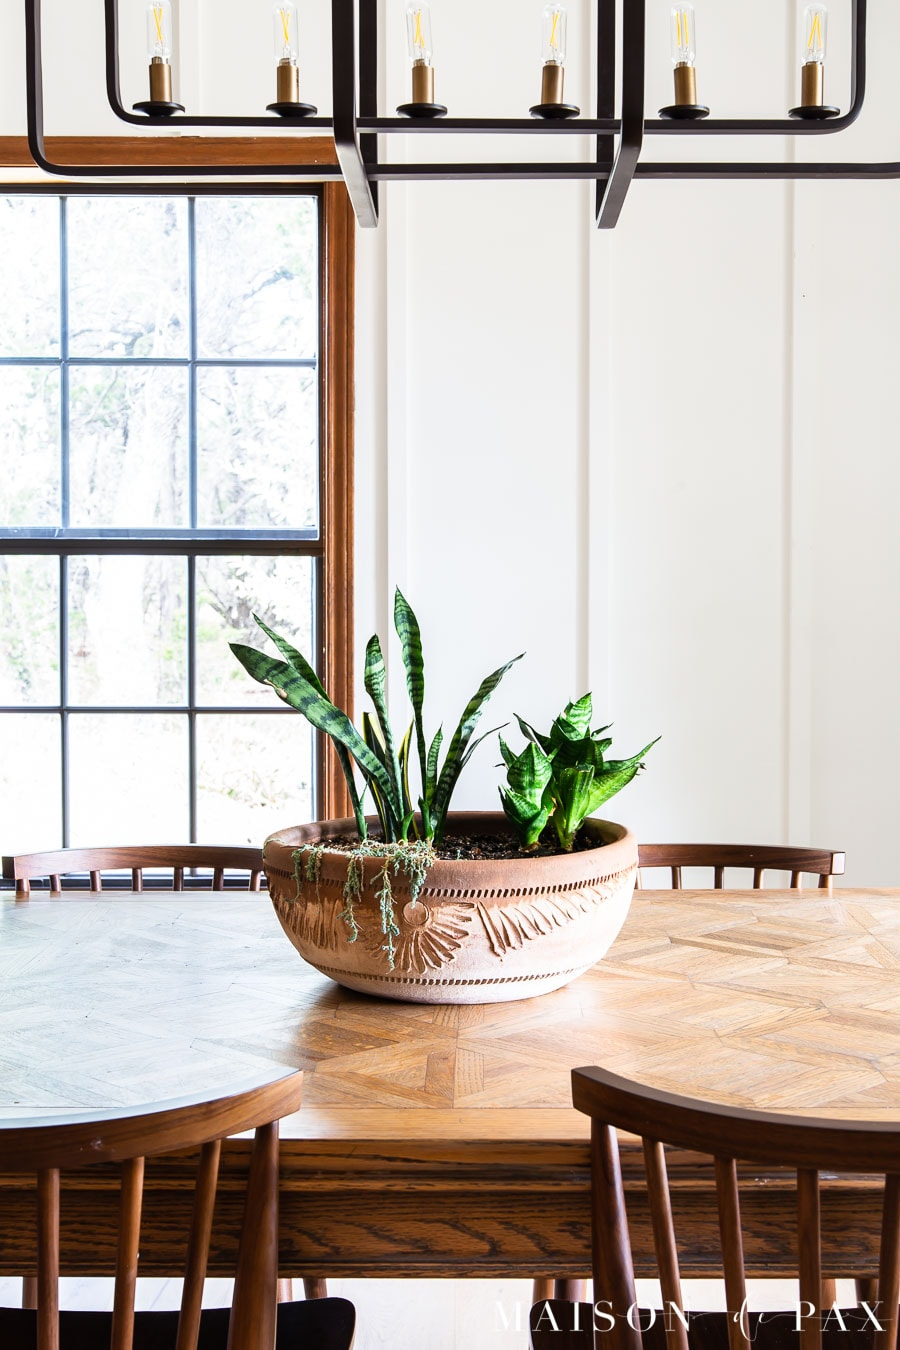 snake plant and dwarf sansevieria in a clay pot on table | Maison de Pax